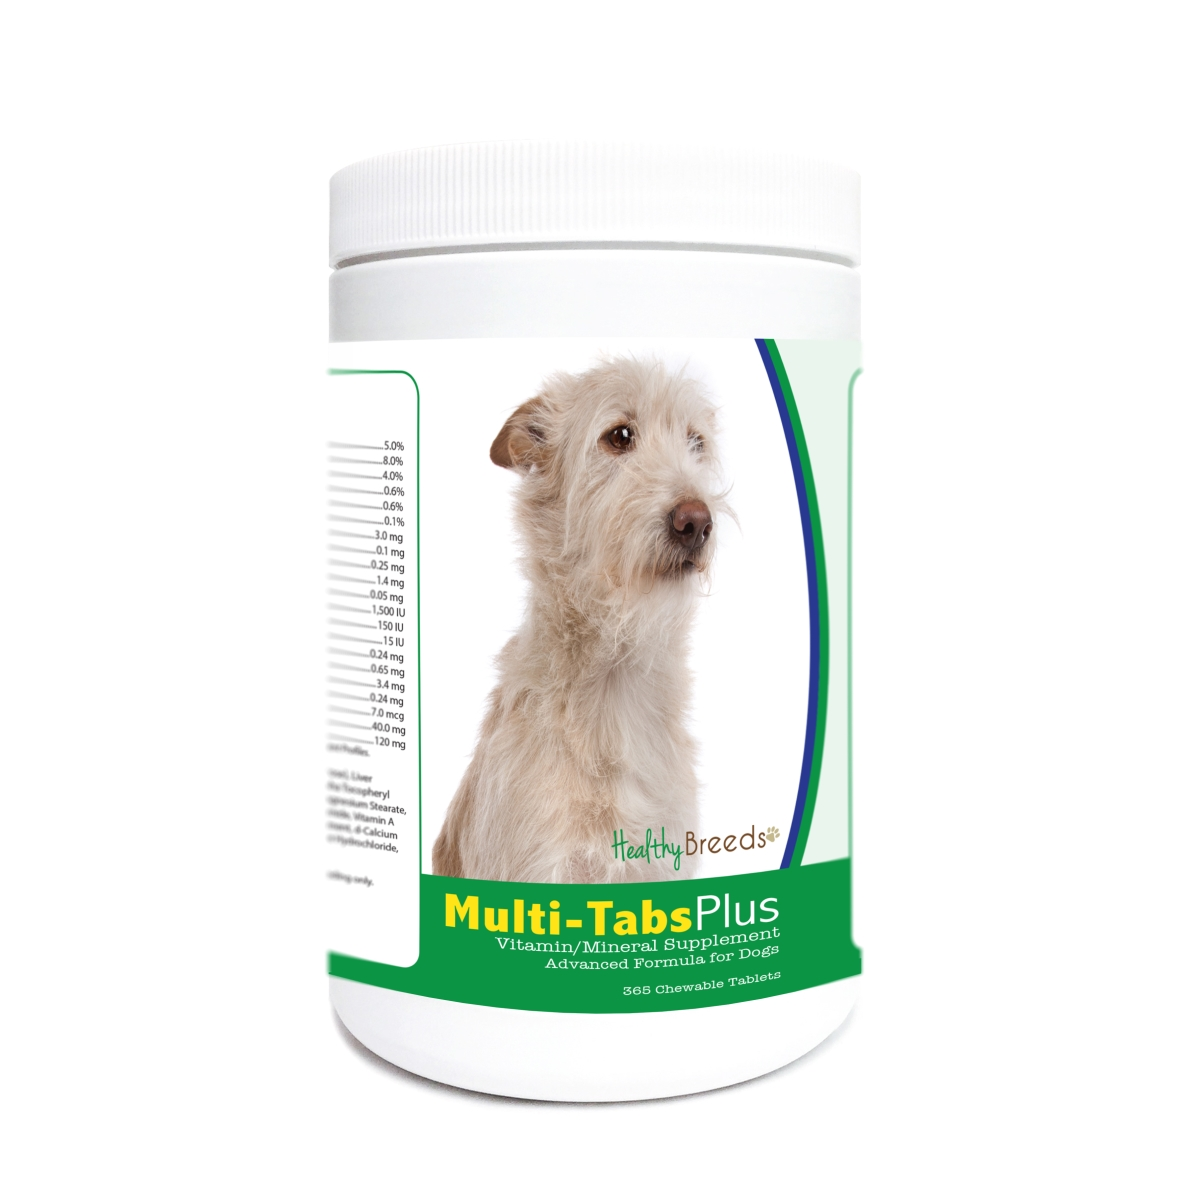 Healthy Breeds 840235178187 Portuguese Podengo Pequeno Multi-Tabs Plus Chewable Tablets - 365 Count